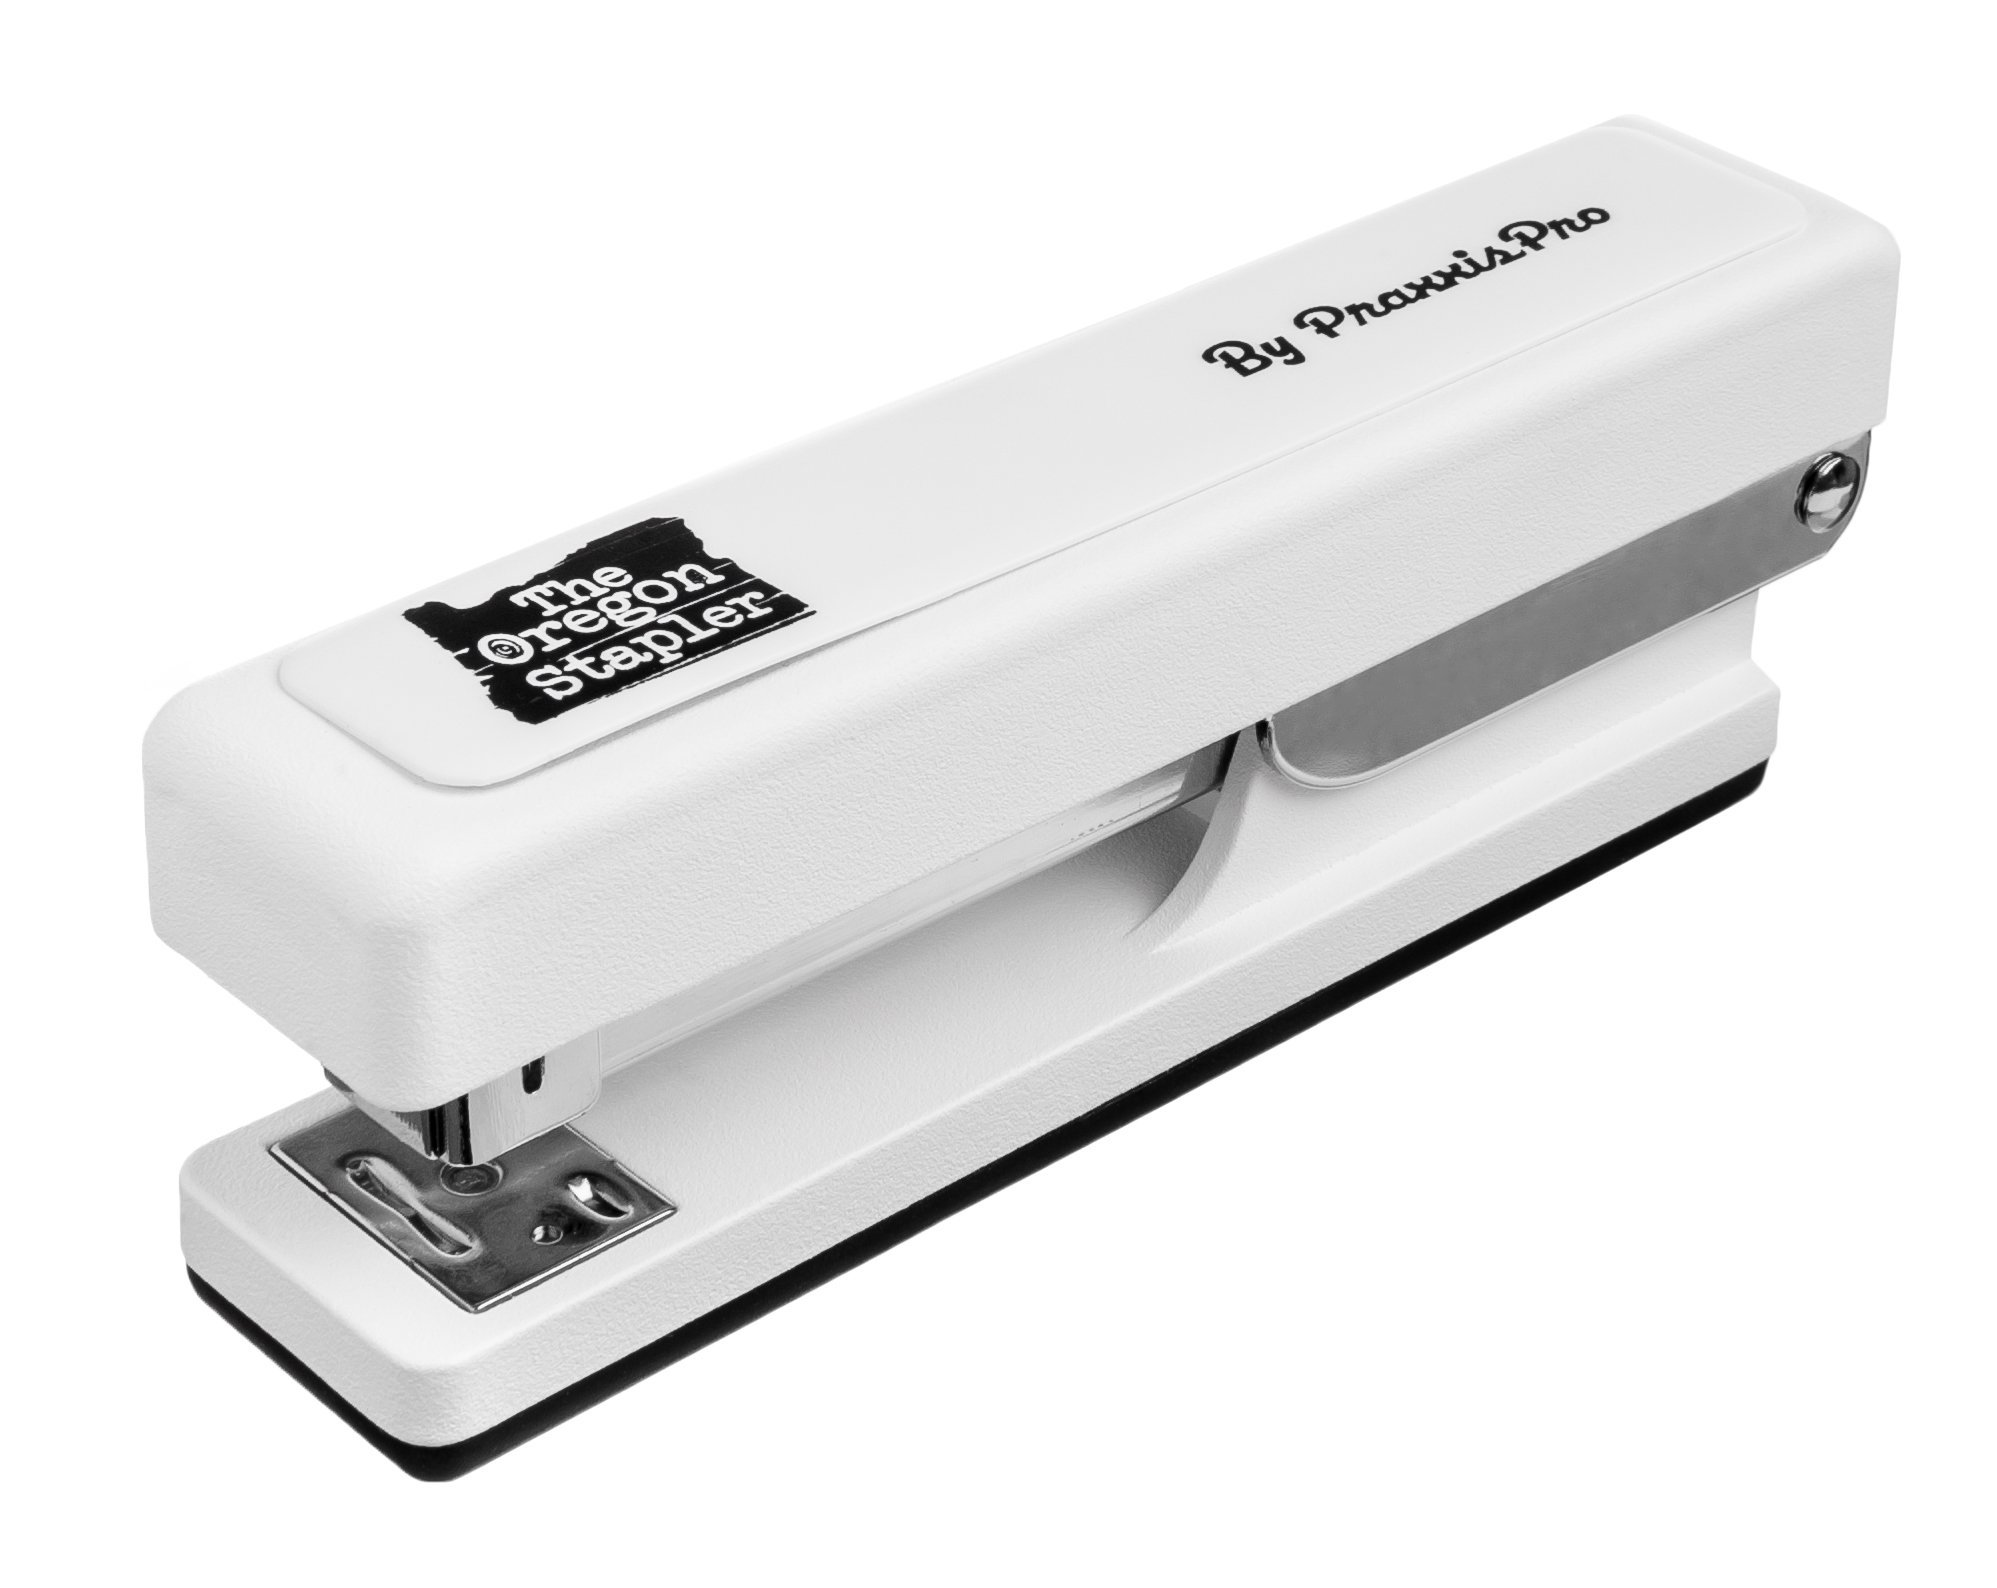 The Oregon Stapler - Heavy Duty, Stapler Built in USA - Perfect for Home or Office Space - Staples 2 to 25 Sheets, Includes Box of Staples- By PraxxisPro (White)